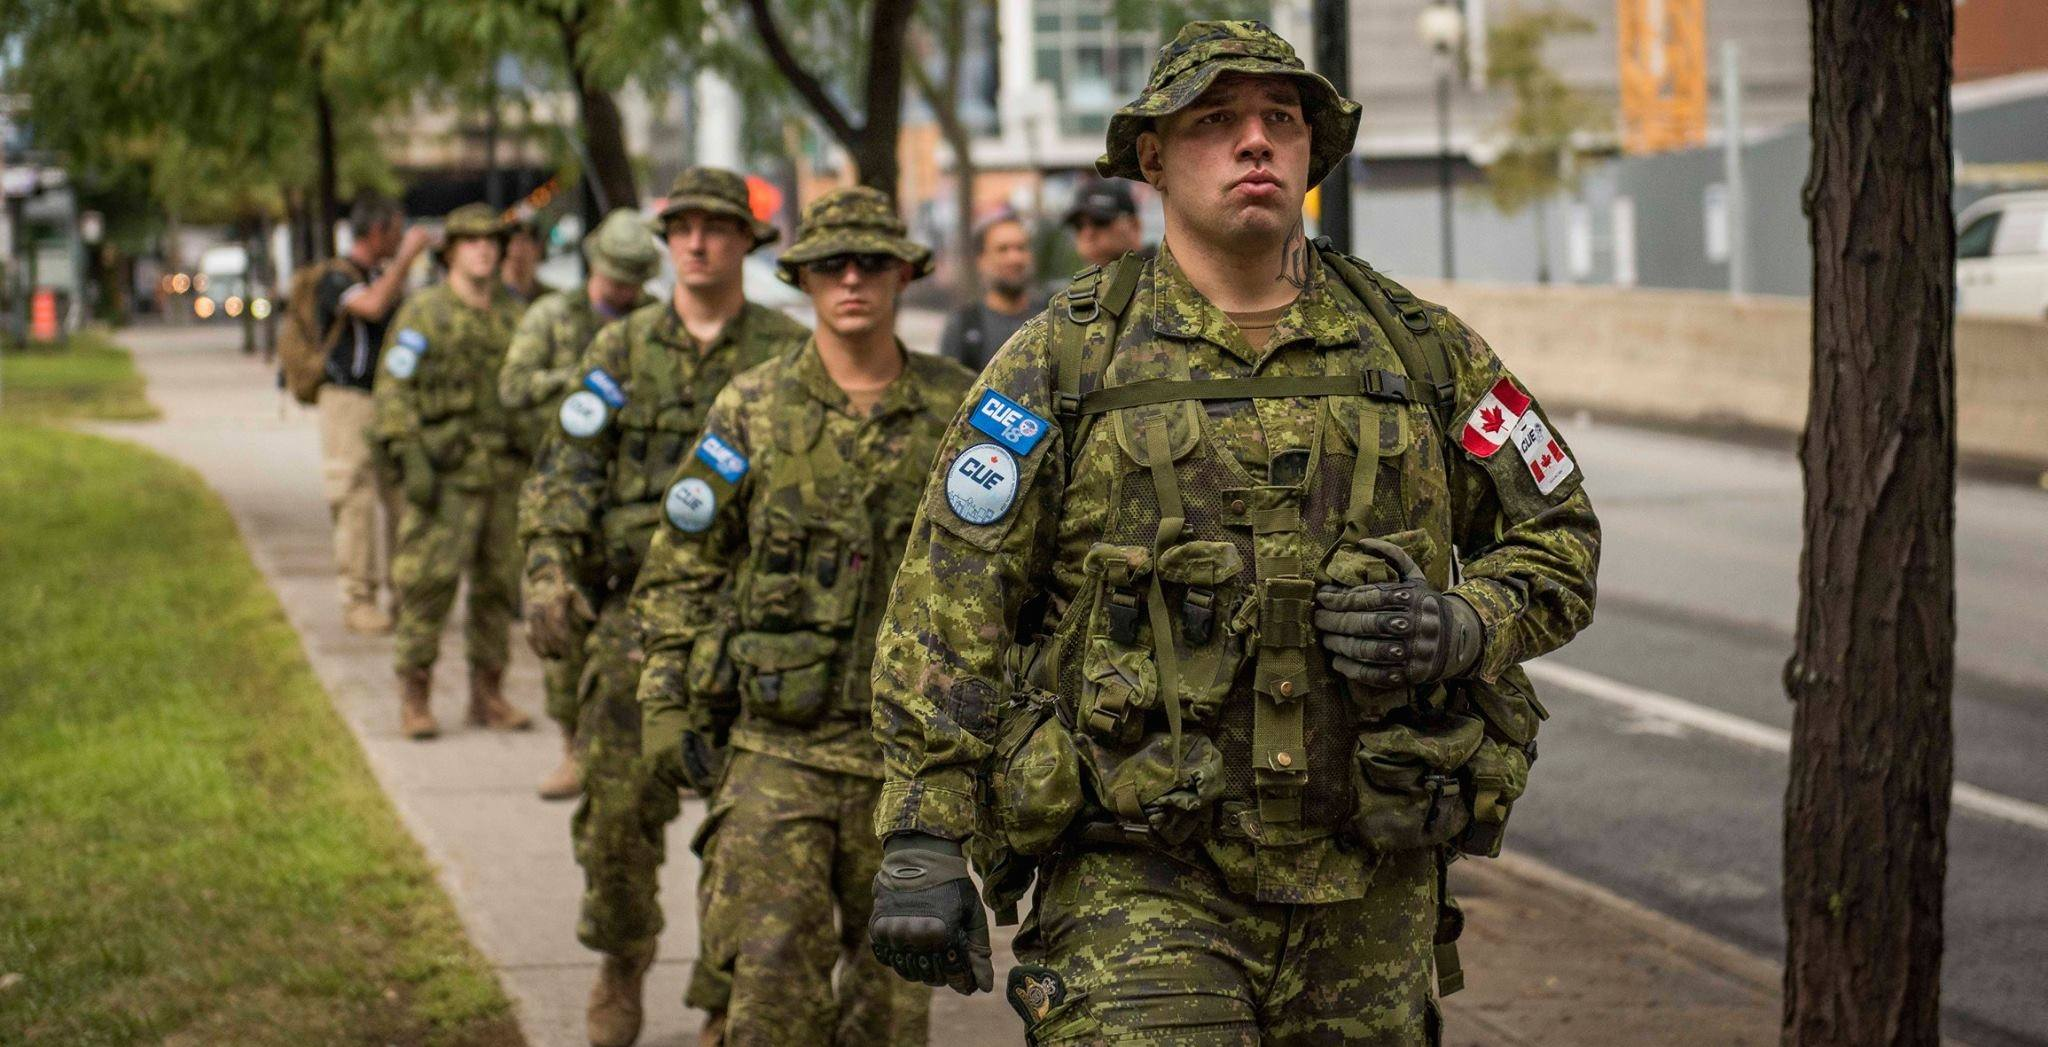 The Canadian military will be on the streets of Montreal next week testing new equipment